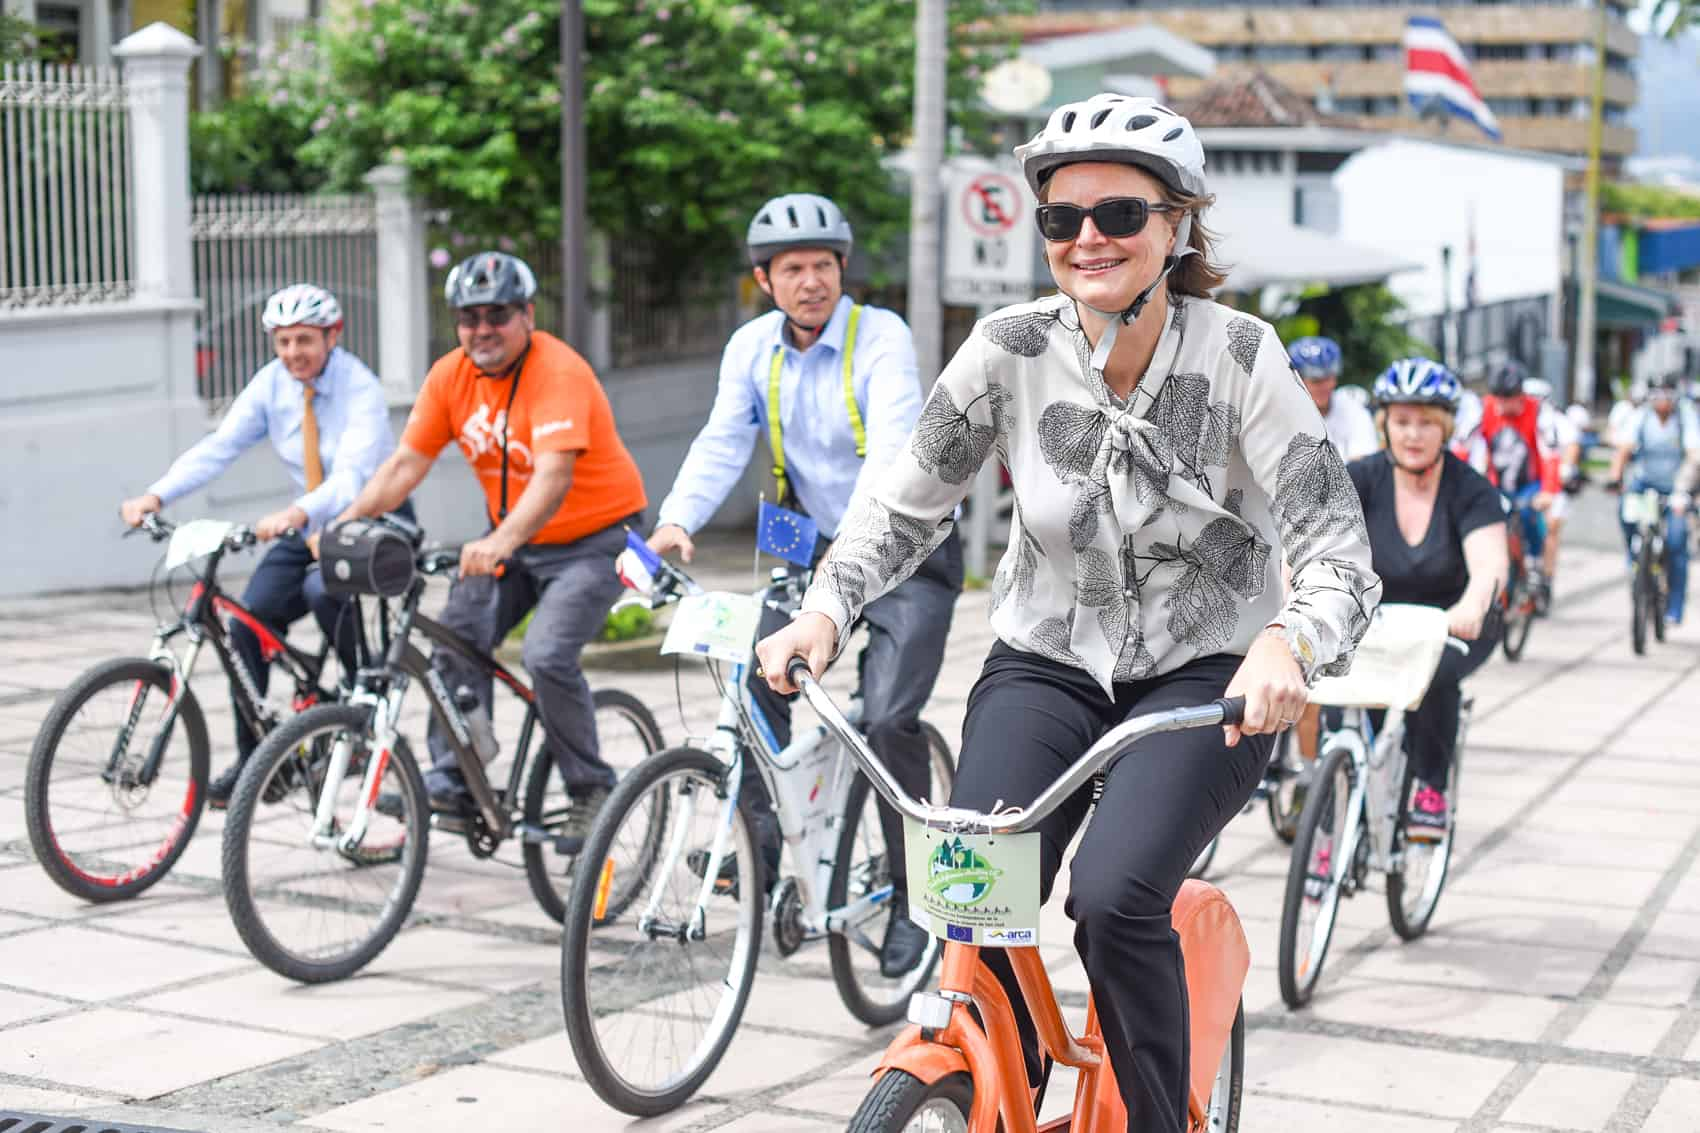 using a bicycle in the city as means of transport Whether due to health benefits, environmental factors, or financial reasons, more people are becoming bicycle commuters in fact, cycling has grown in popularity as a primary means of transportation throughout the past decade.